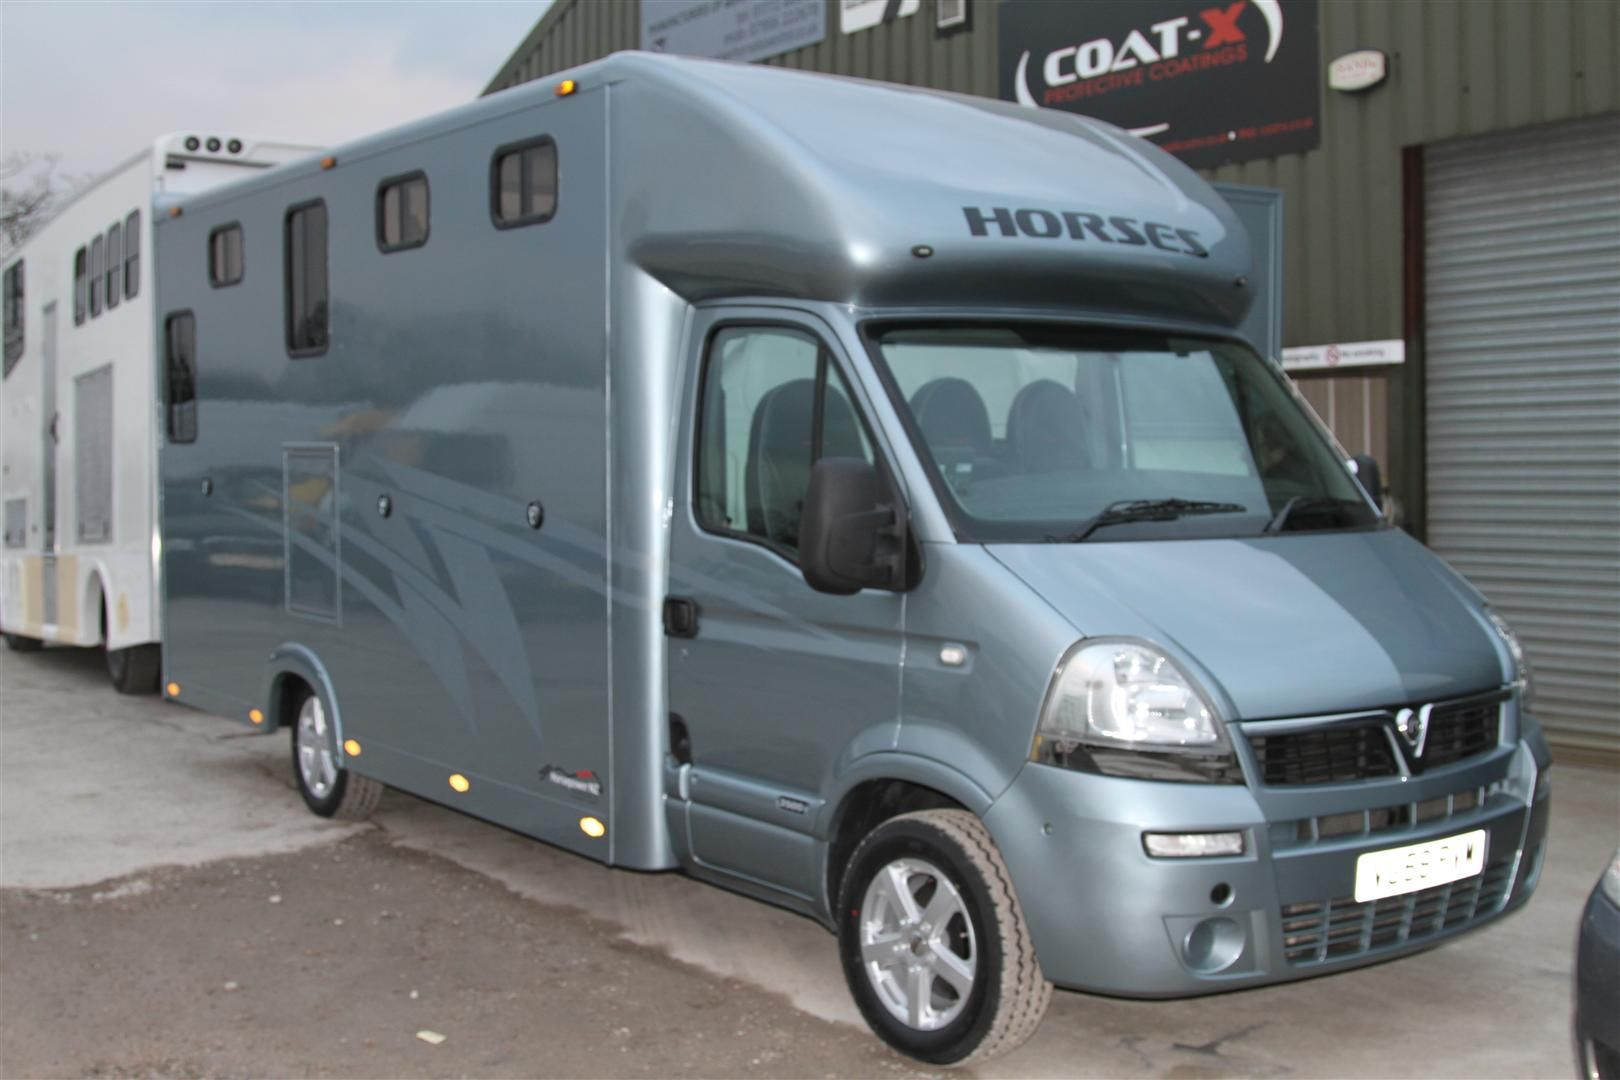 4 5 Tonne Aeos Horseboxes By Kevin Parker Horseboxes Kevinparkerhorseboxes Horse Horsebox Recreational Vehicles Vehicles Photo